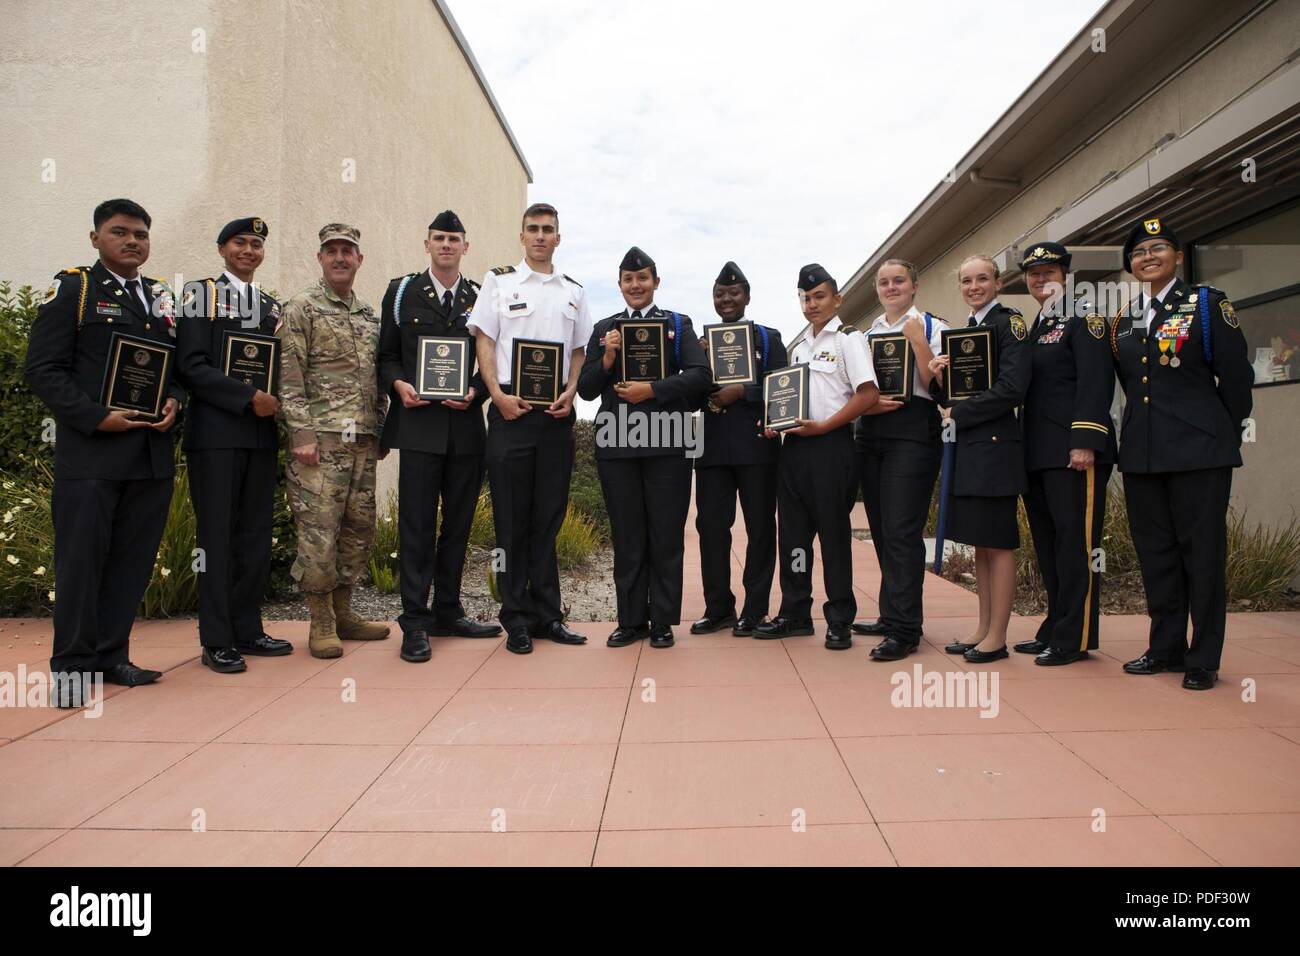 Thesis Statement Essay Example California Cadet Corps Individual Major Awards Statewide Winners Present  Their St Place Plaques May  Thesis Examples For Argumentative Essays also Persuasive Essay Examples For High School Ycptf Stock Photos  Ycptf Stock Images  Alamy Essay About Healthy Diet